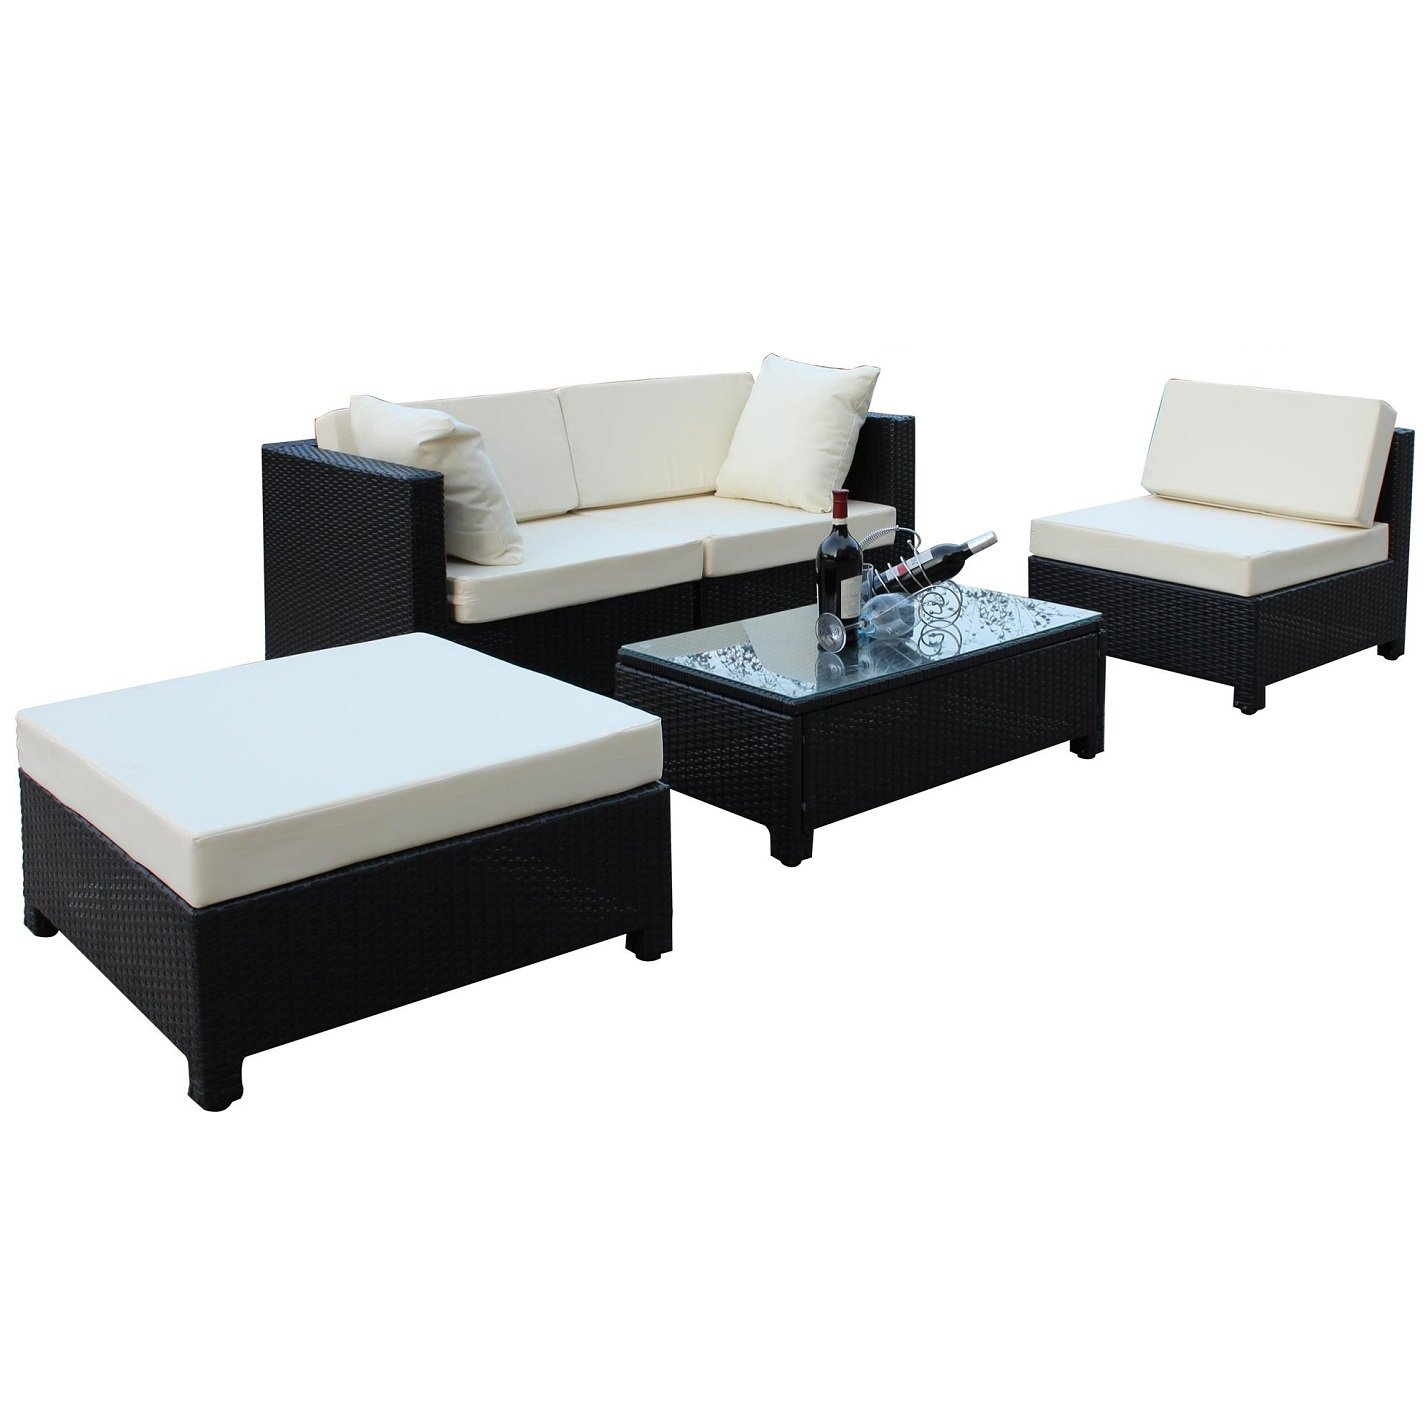 Evre Rattan Outdoor Garden Furniture Coffee Table Sofa Chair Set